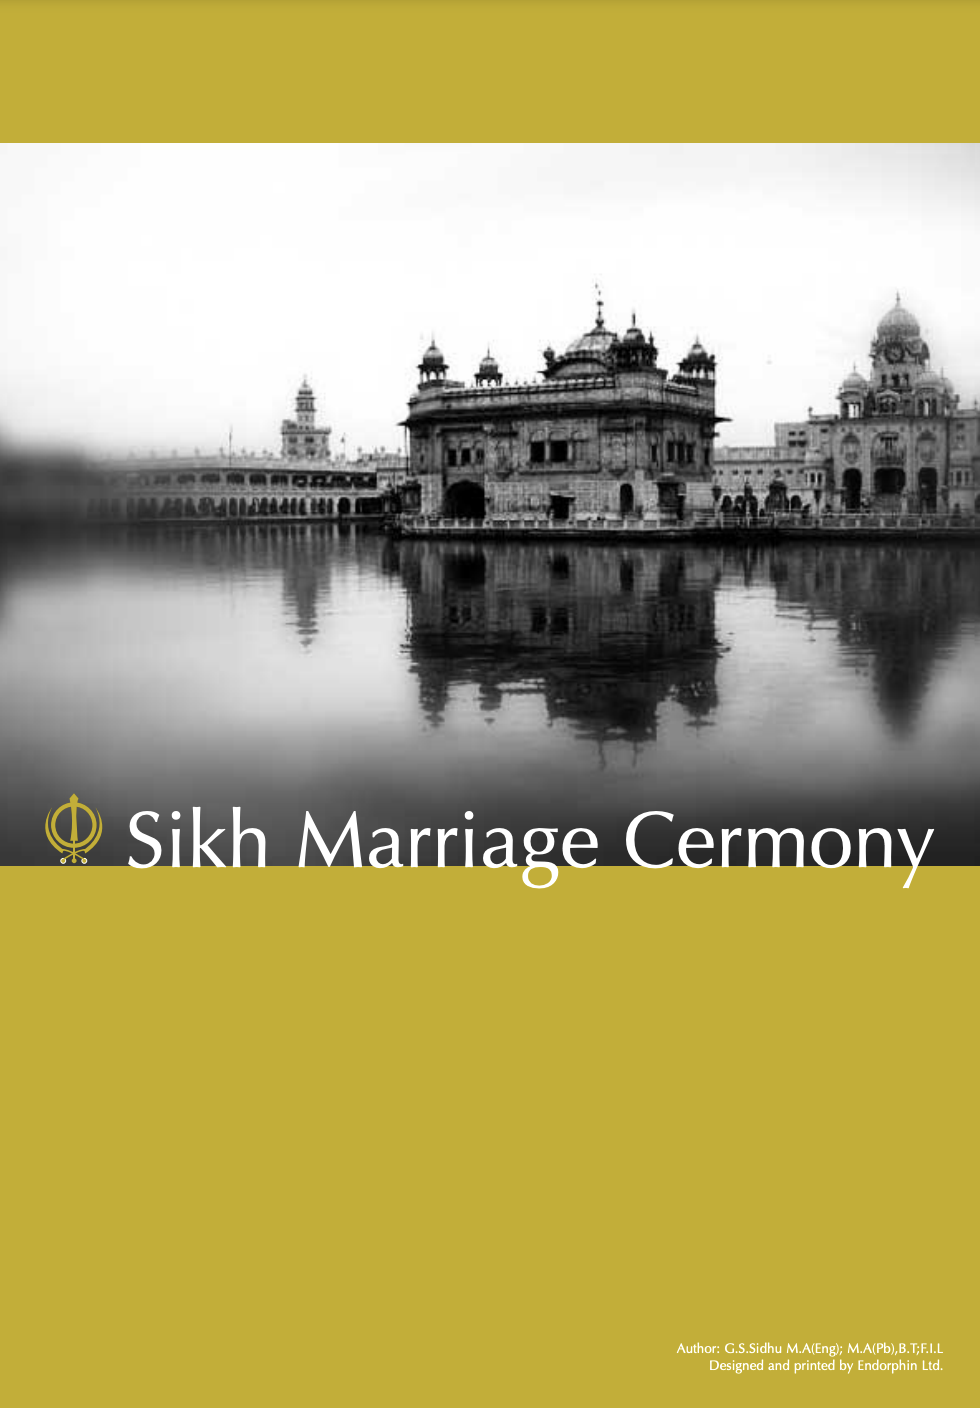 Sikh Marriage Cermony